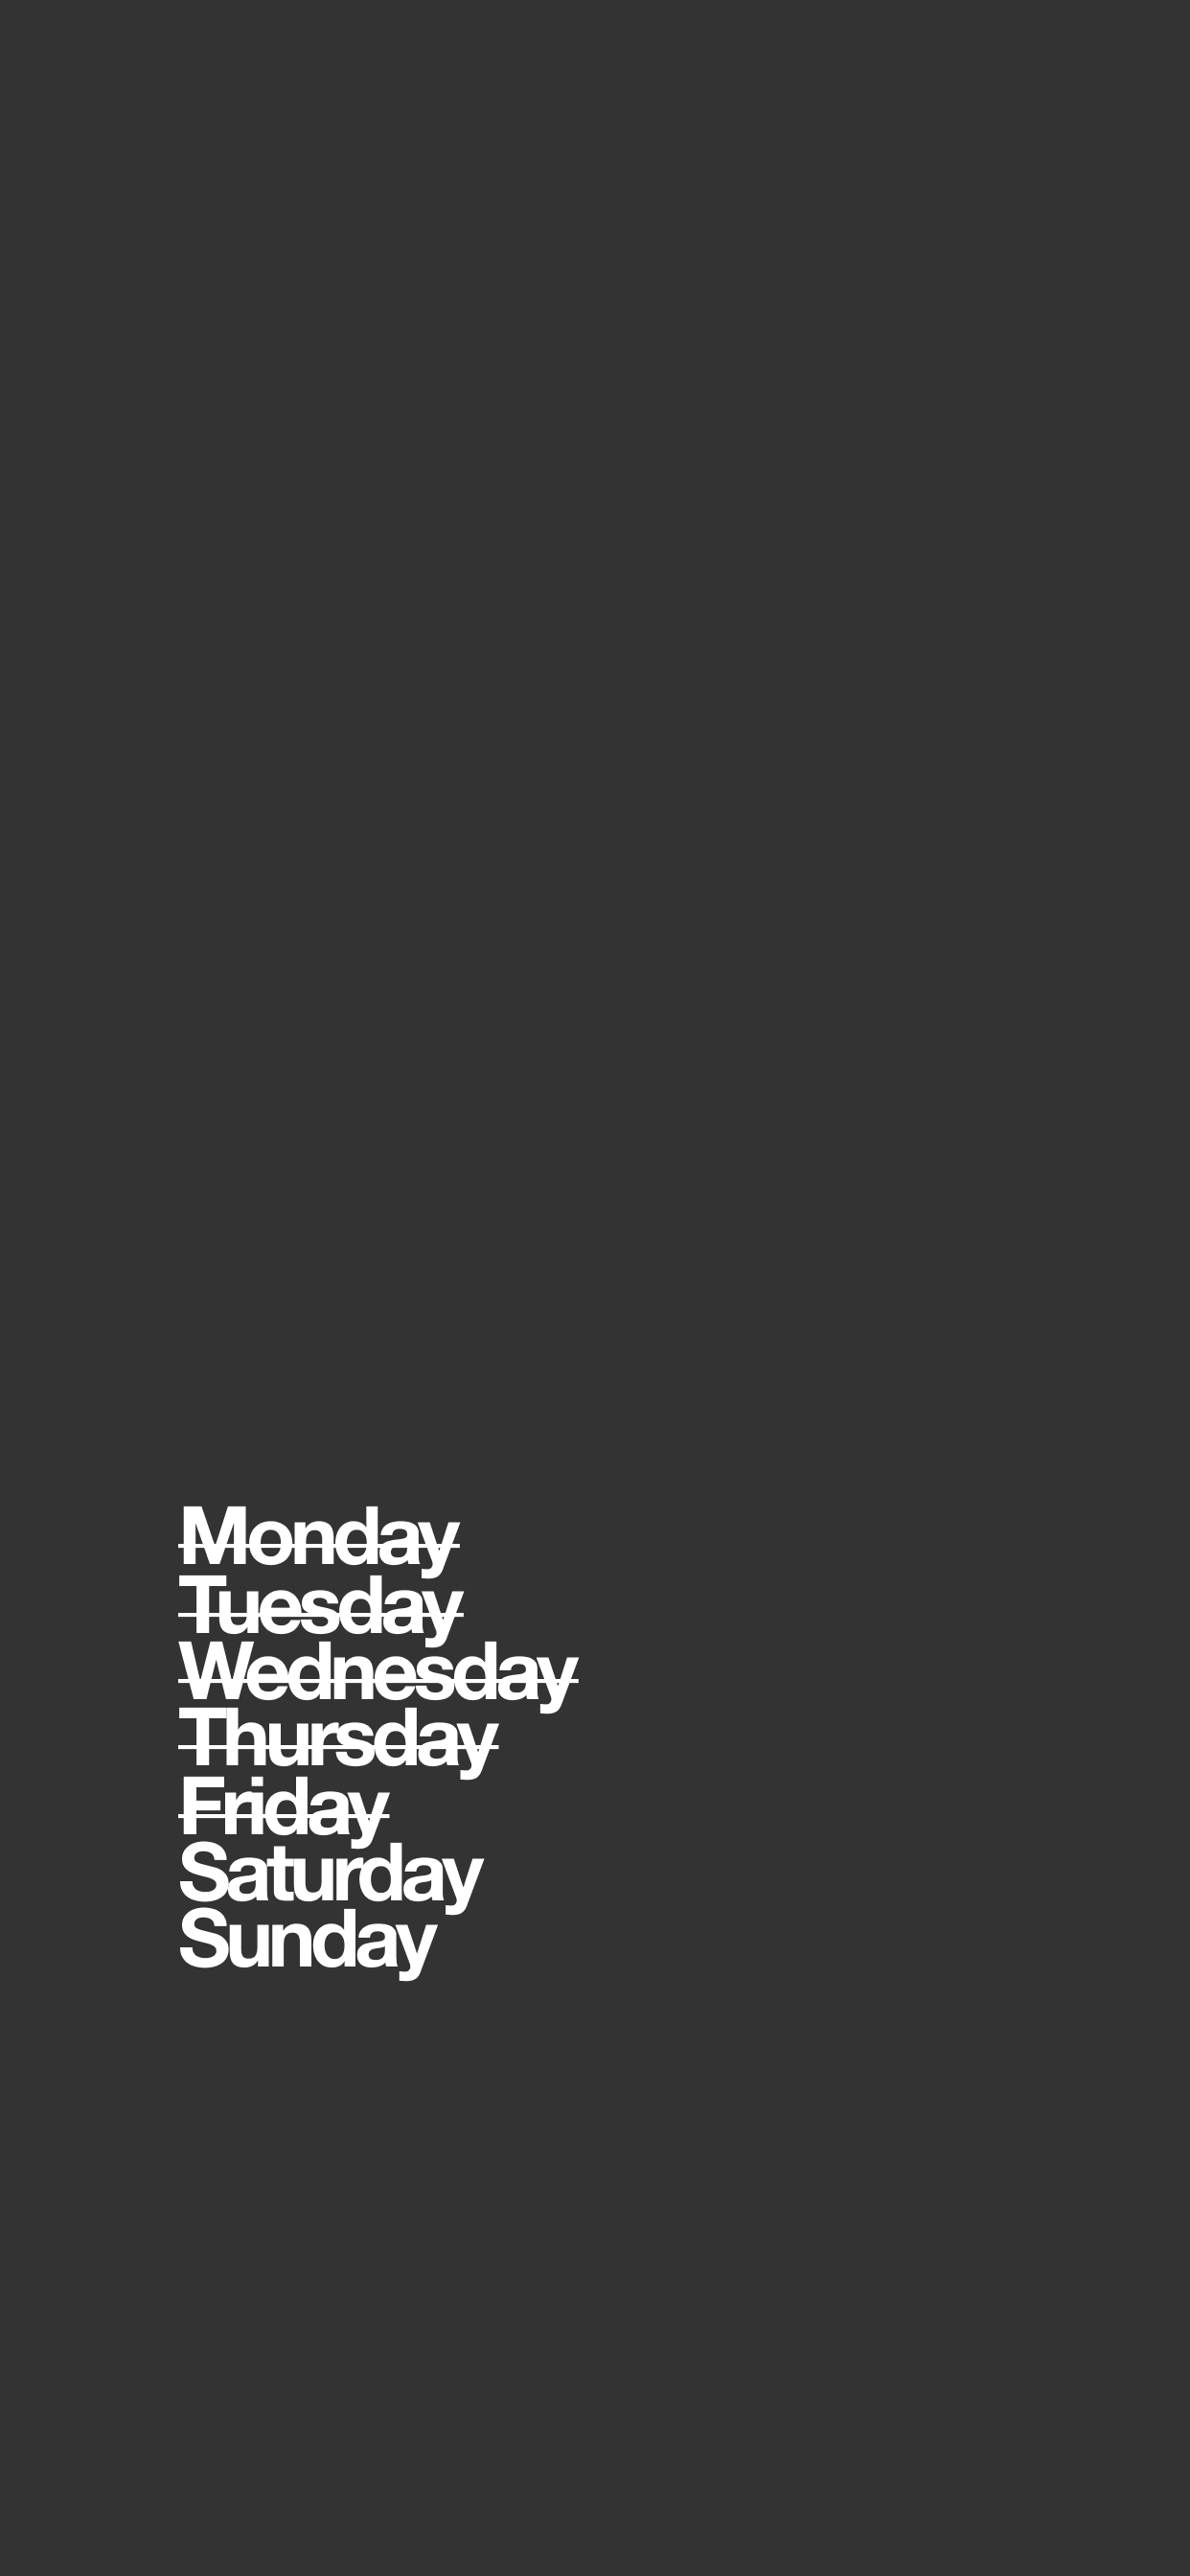 Days of the week Left Align